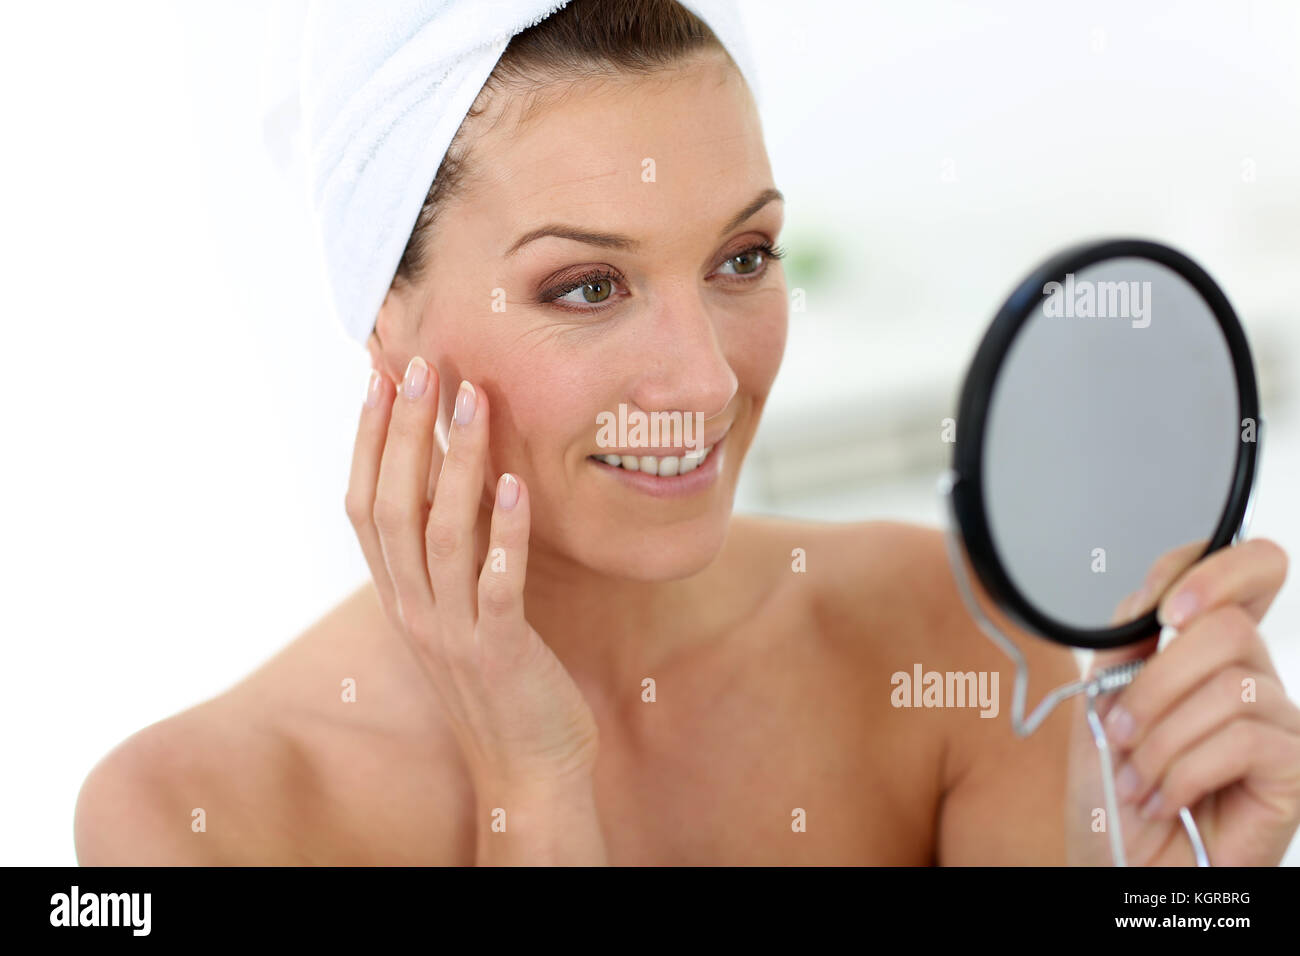 Middle-aged woman in bathroom looking at mirror - Stock Image